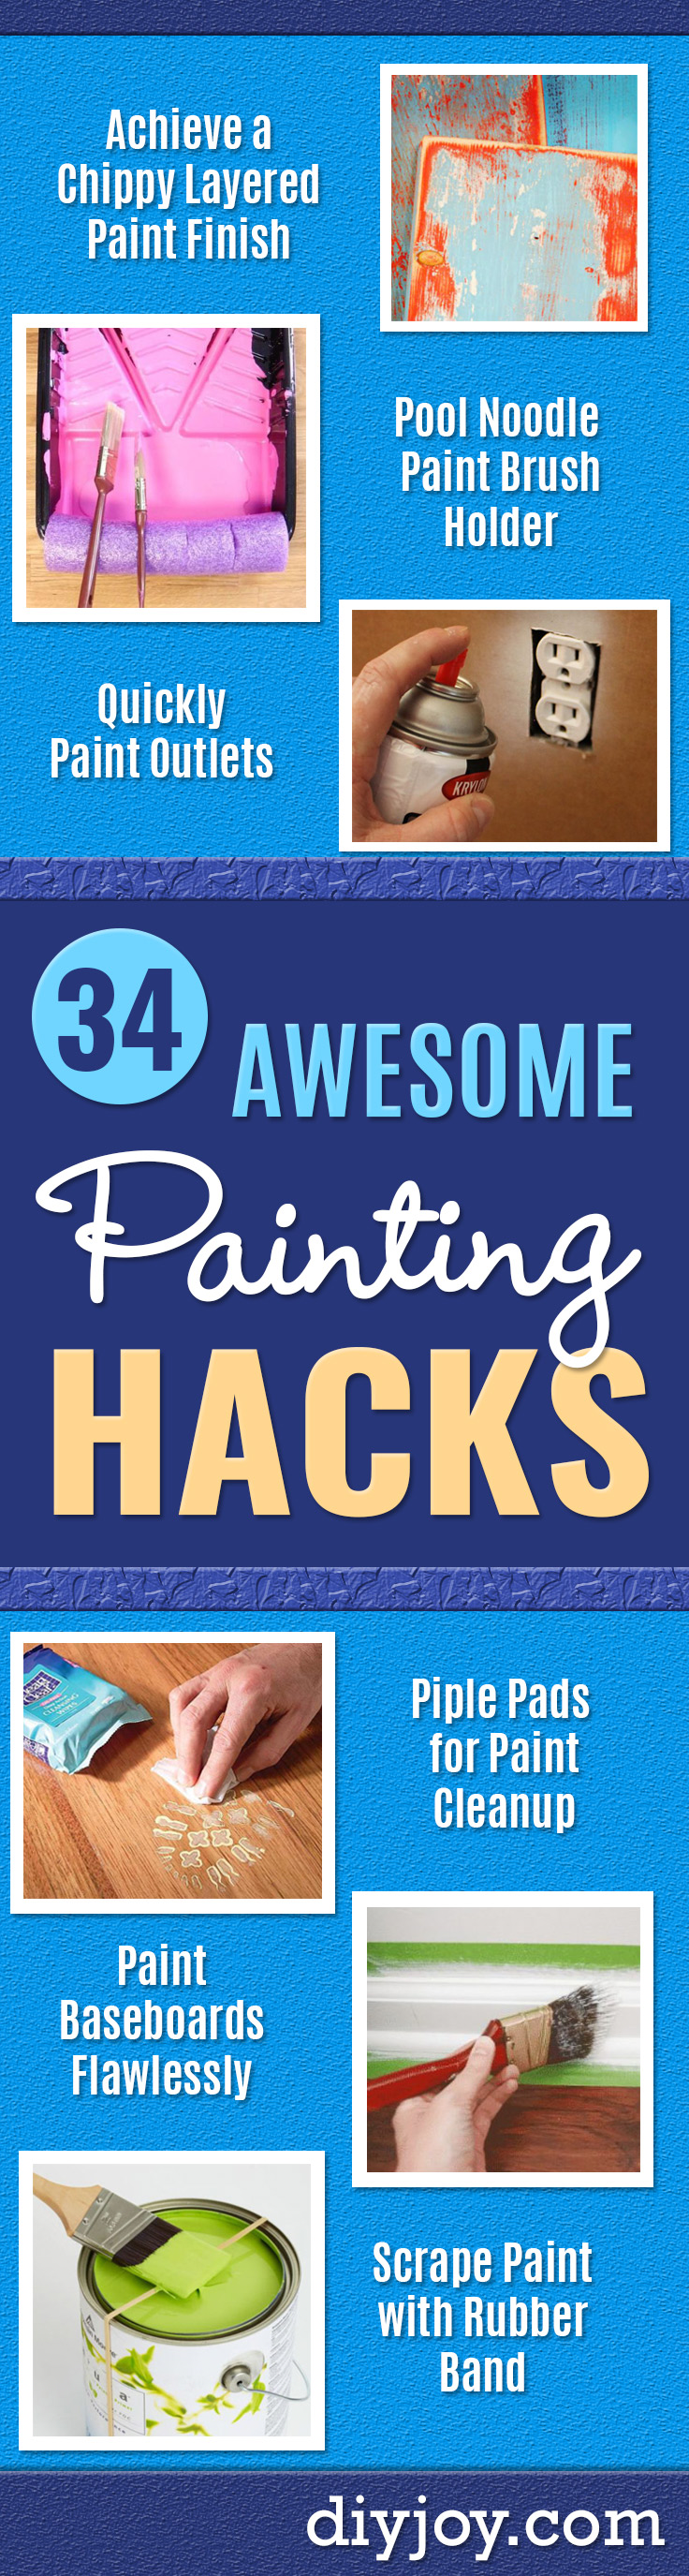 DIY Painting Hacks - Easy Ways To Shortcut House Painting - Wall Prep, Painters Tape, Trim, Edging, Ceiling, Exterior Cutting In, Furniture and Crafts Paint Tips - Paint Your House Or Your Room With These Time Saving Painter Hacks and Quick Tricks http://diyjoy.com/diy-painting-hacks